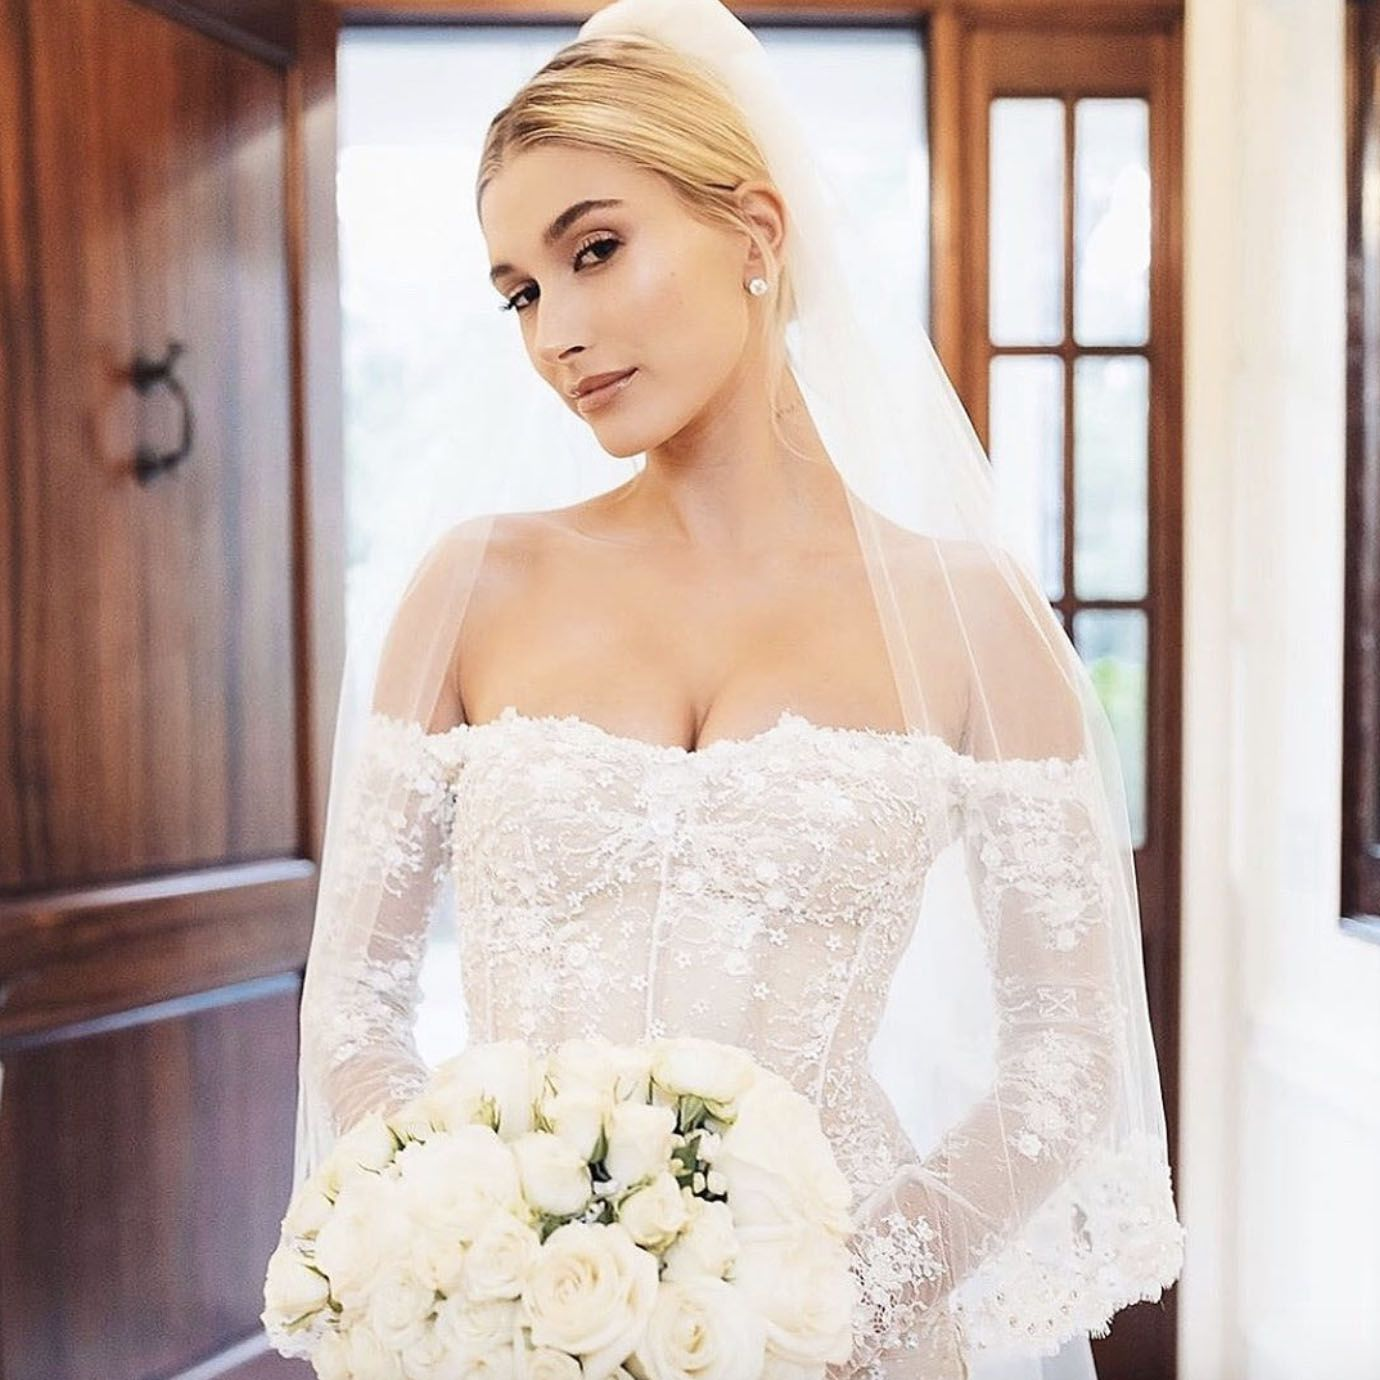 How to Ensure You Have the Perfect Hair Color for Your Wedding